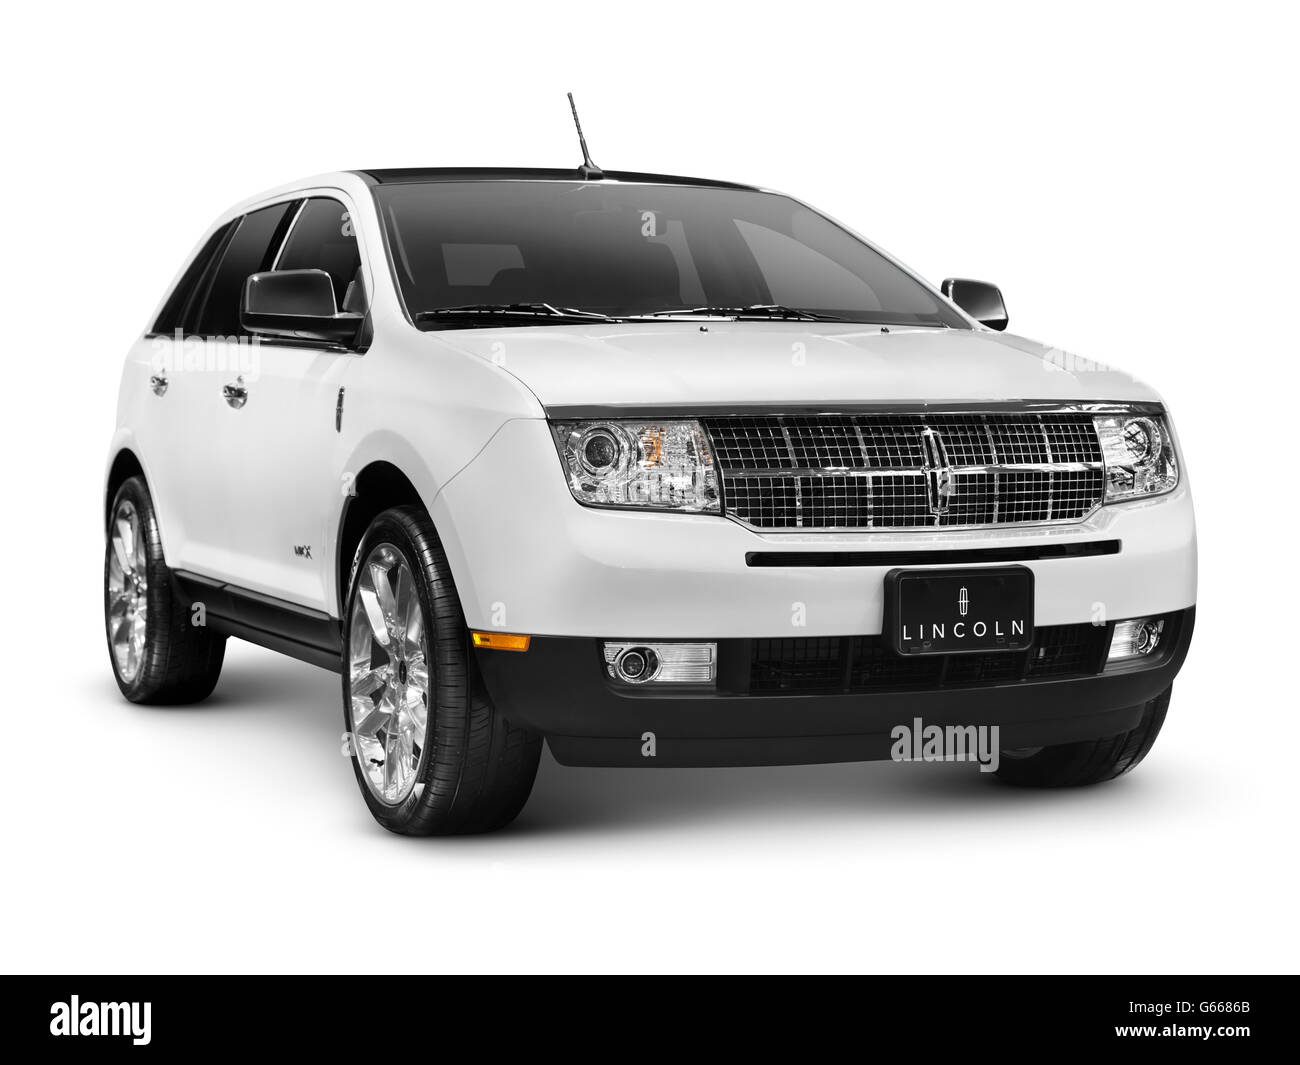 White 2010 Lincoln MKX SUV - Stock Image